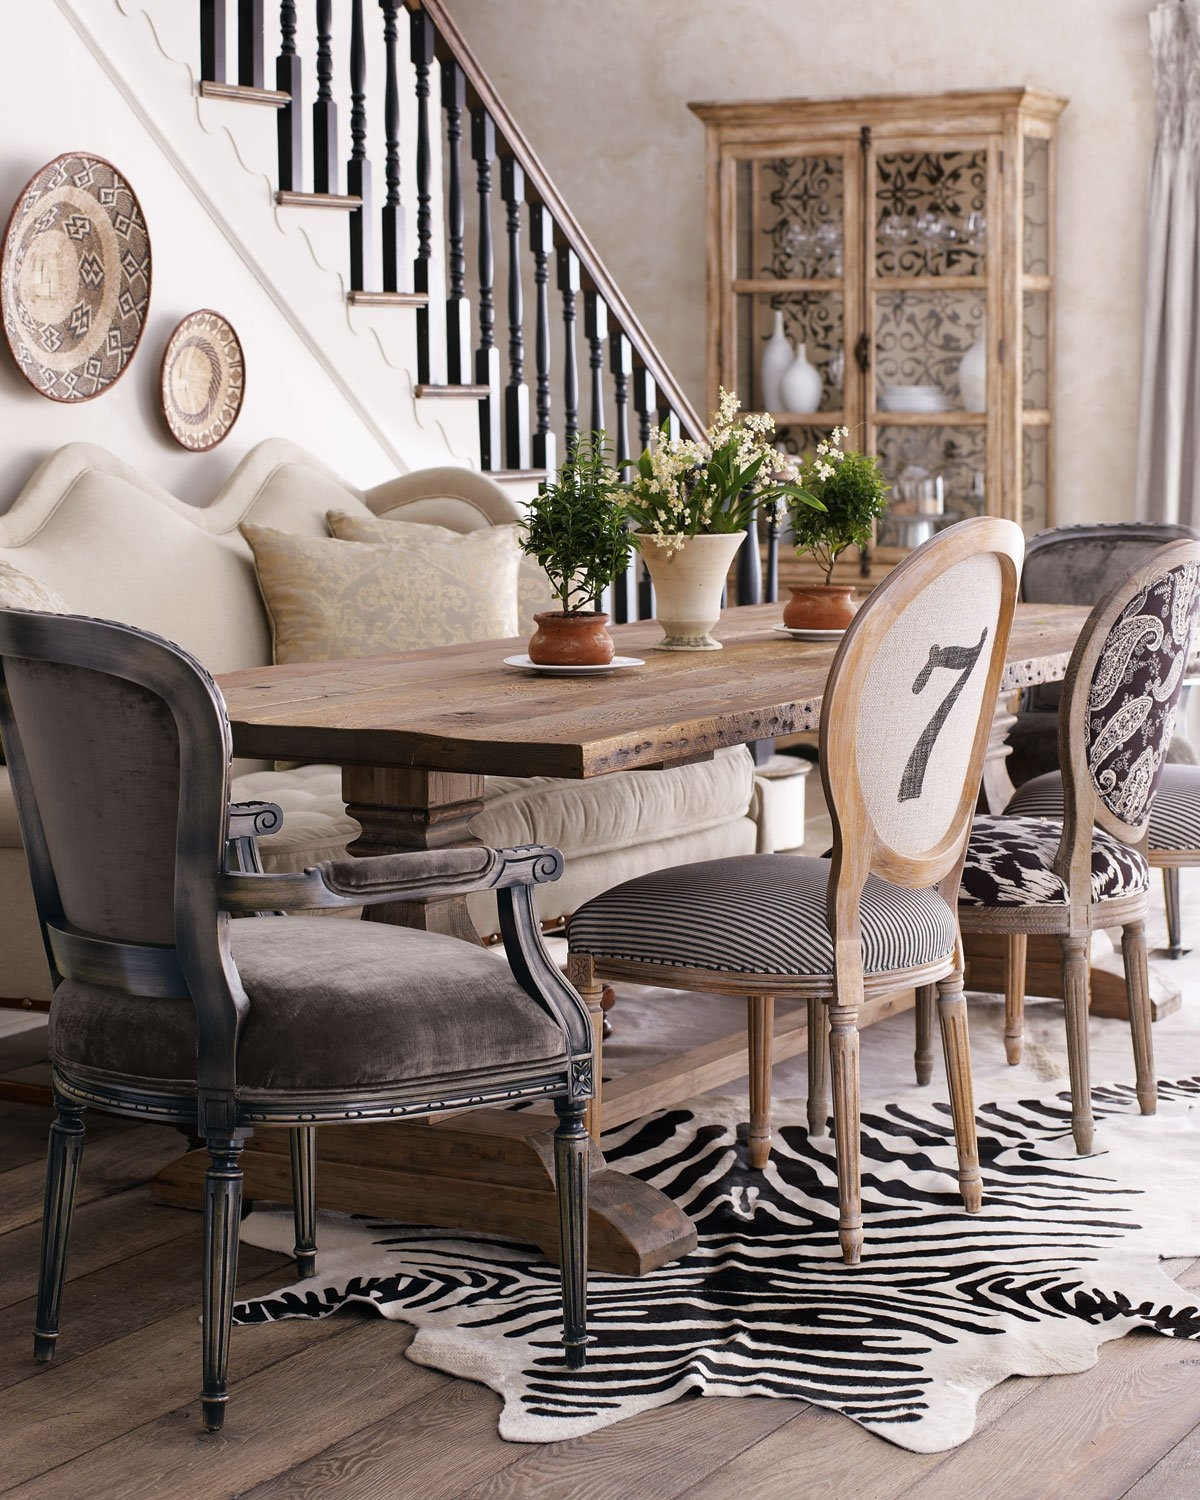 French Style Shabby Chic En Bois Crème Nesting Table Living Room Furniture